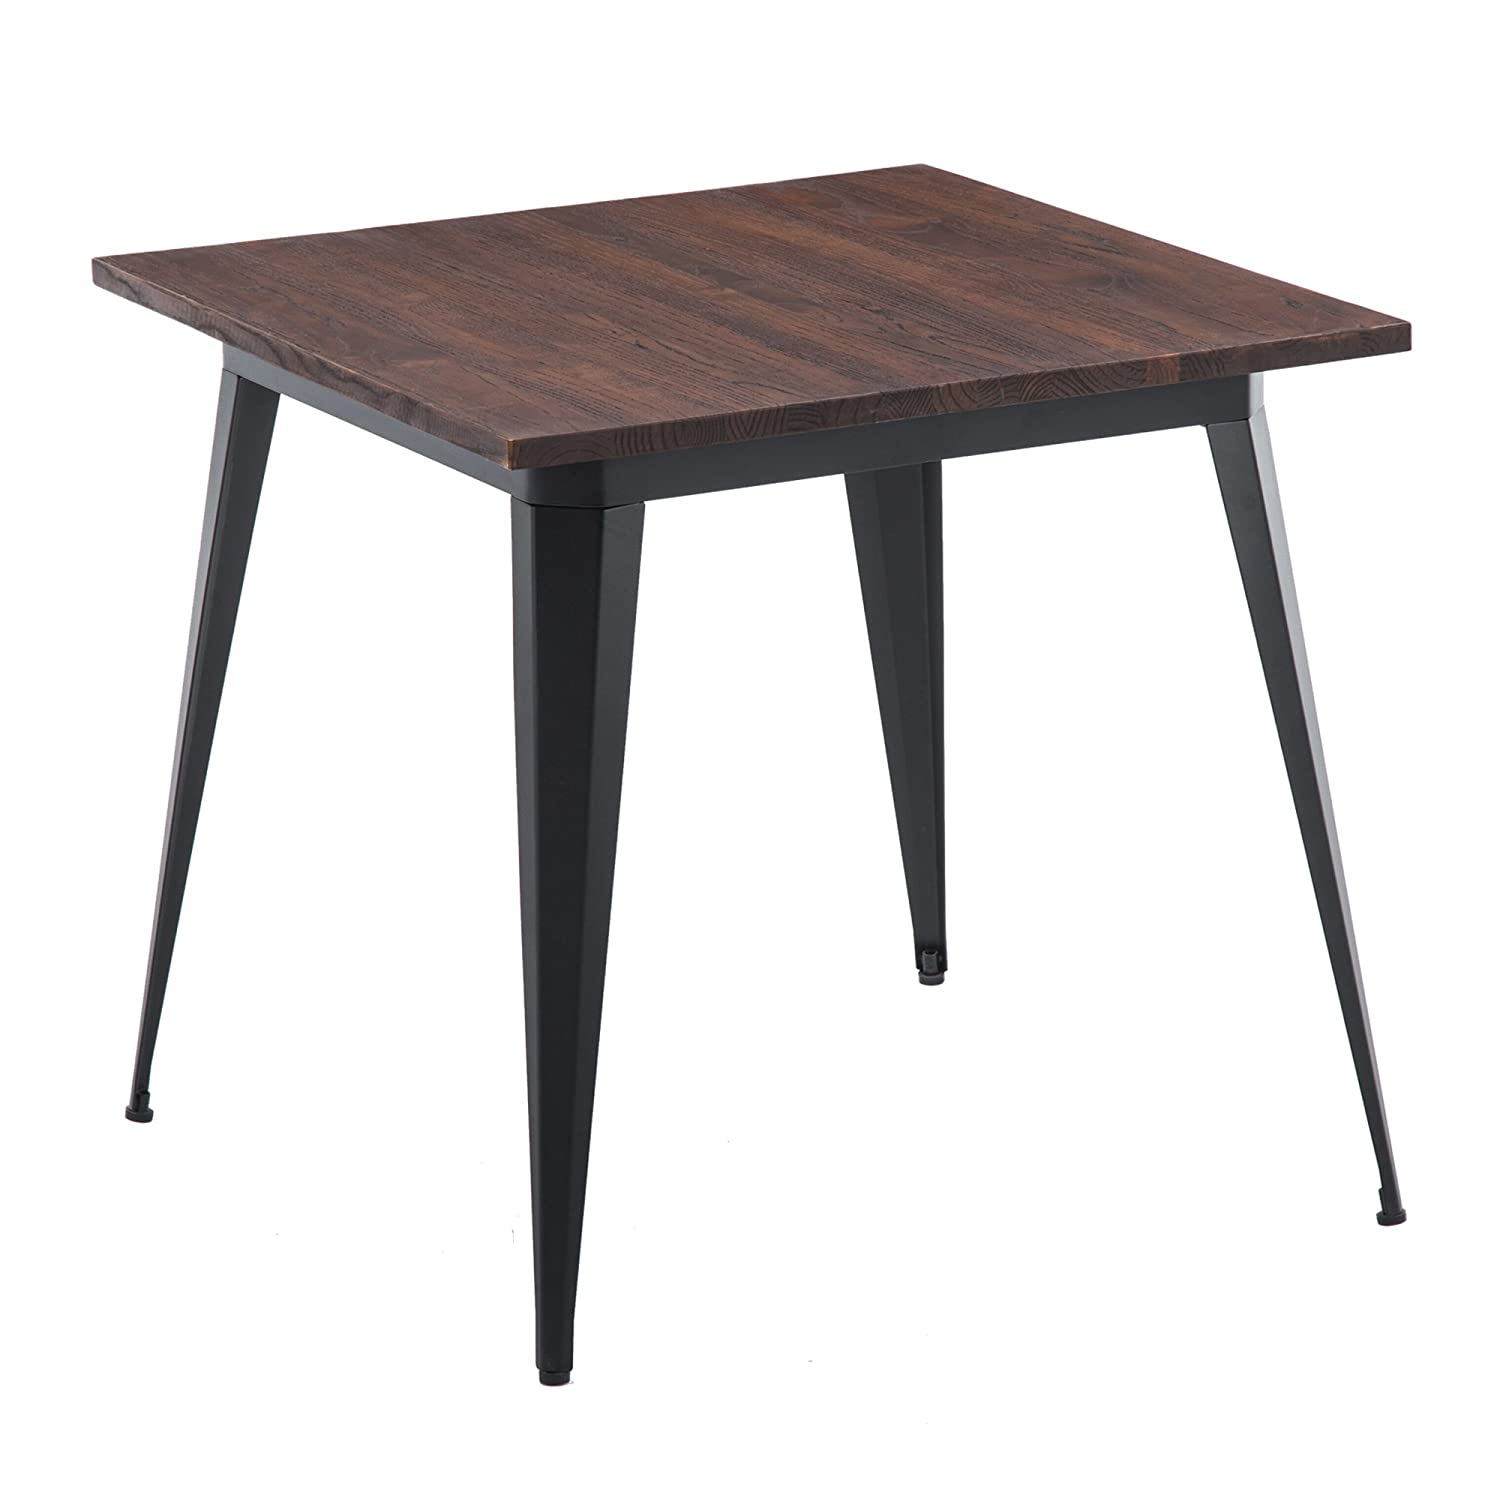 LSSBOUGHT Wood and Metal Square Dining Table, 31.5 W 31.5 L